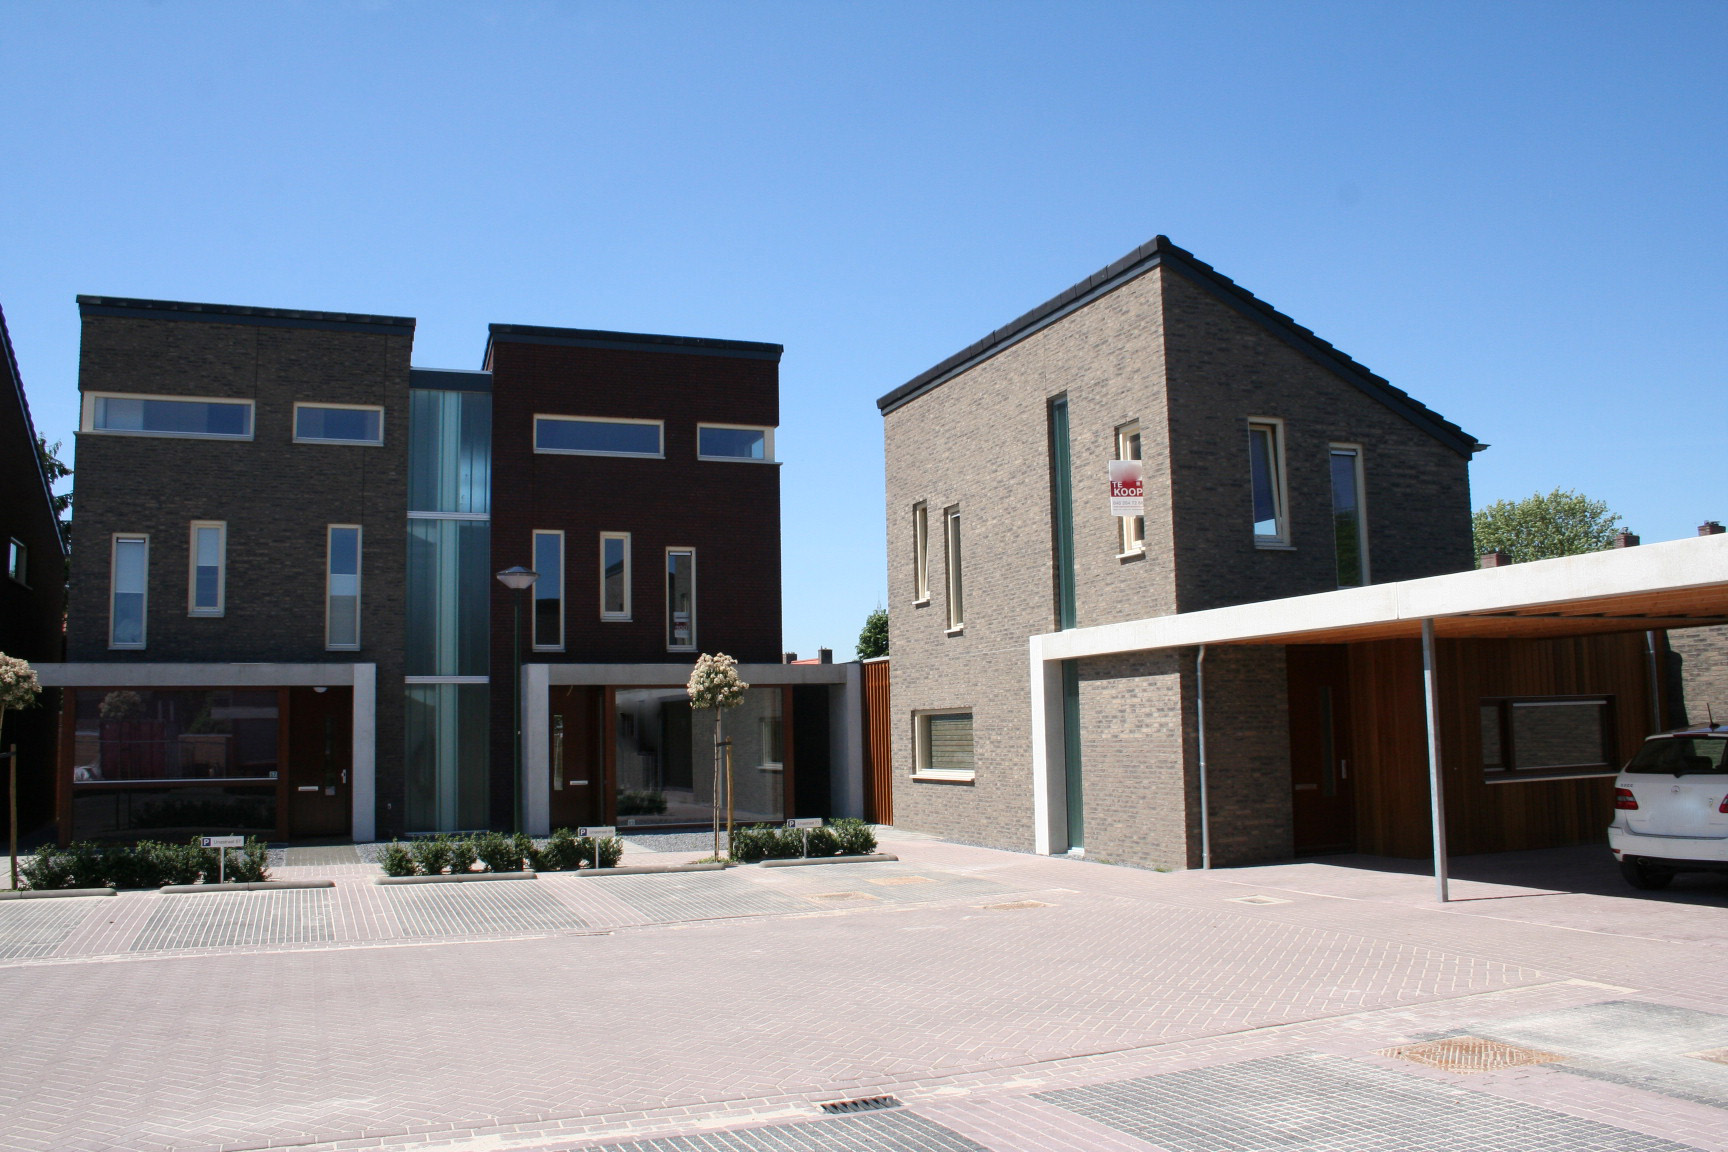 PATIOWONING EN TWEEKAPPERS